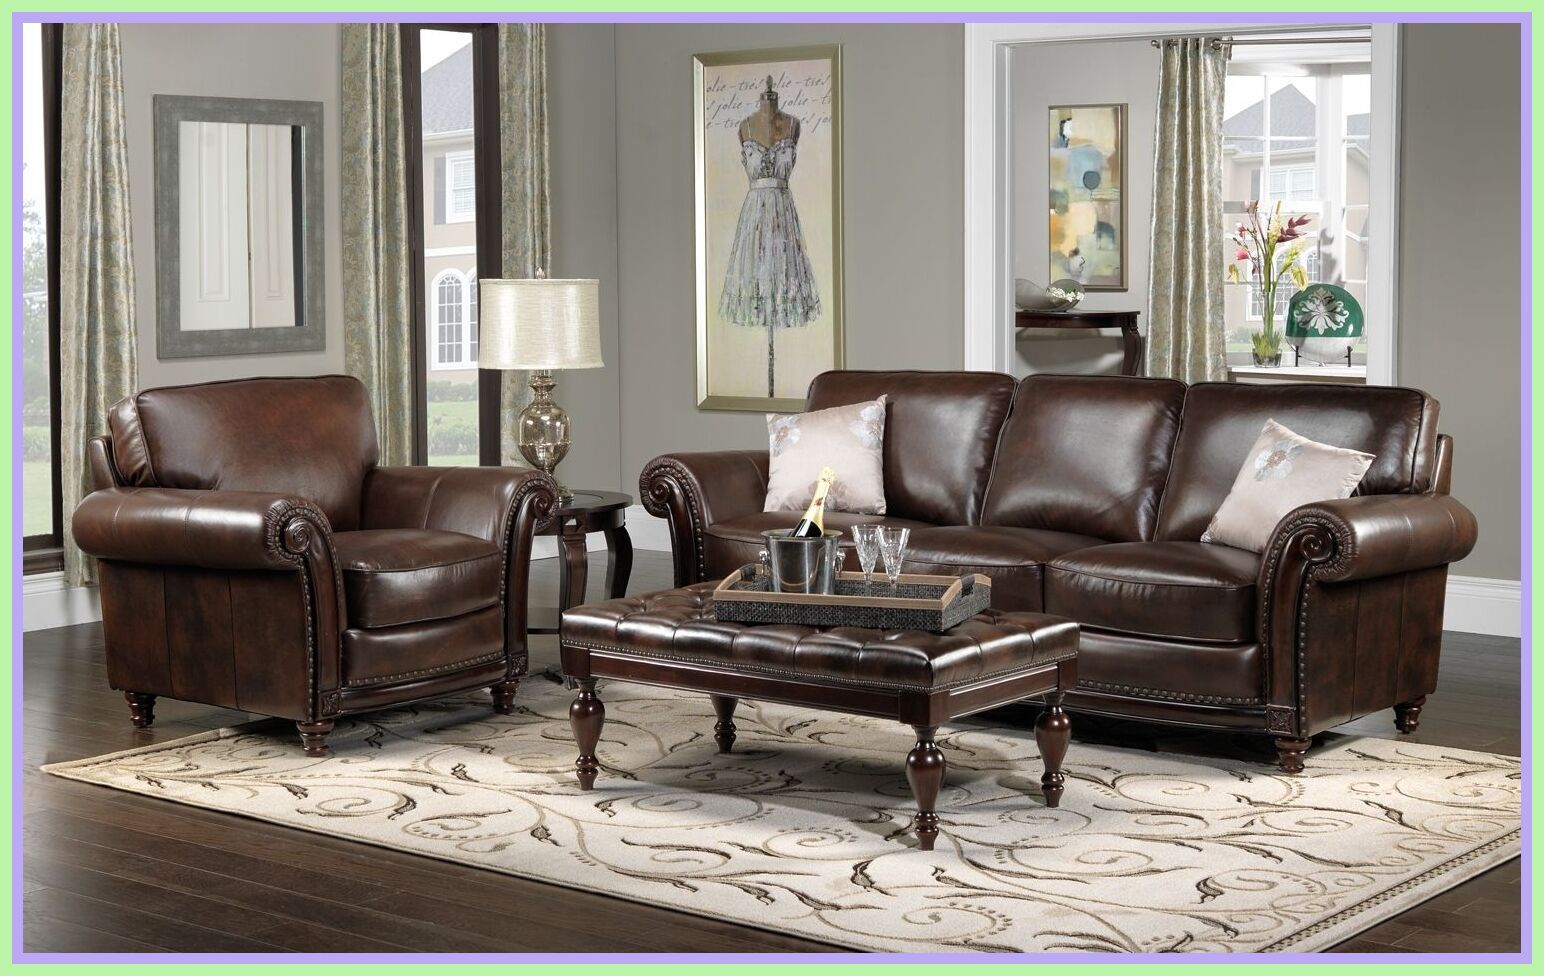 Dark Wood Floors Gray Walls What Beige Couch Will Look Like Against Gray Beige Living Rooms Home Living Room Grey